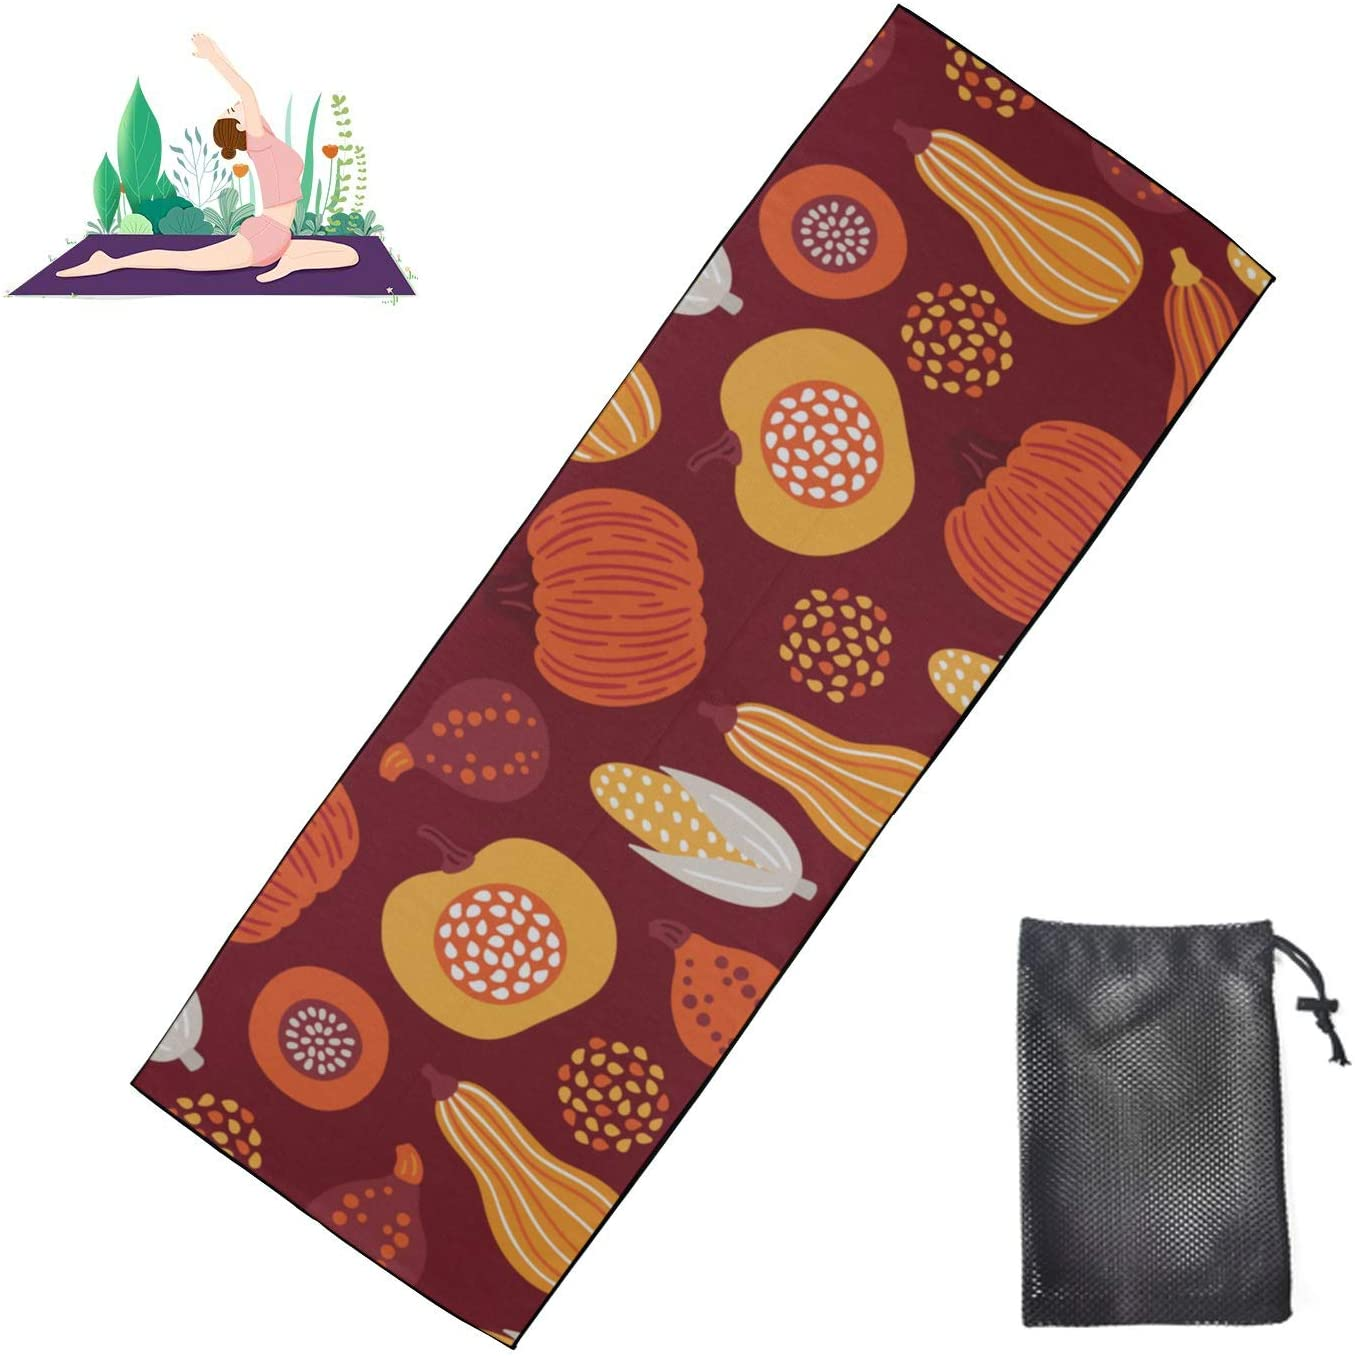 JGYJF Fun Yoga Mat Sweet Fashion Fruit Vegetable Harvest Towel Yoga Mats Microfiber Super Soft and Sweat Absorbent, Ideal for Hot Yoga, Pilates and Workout